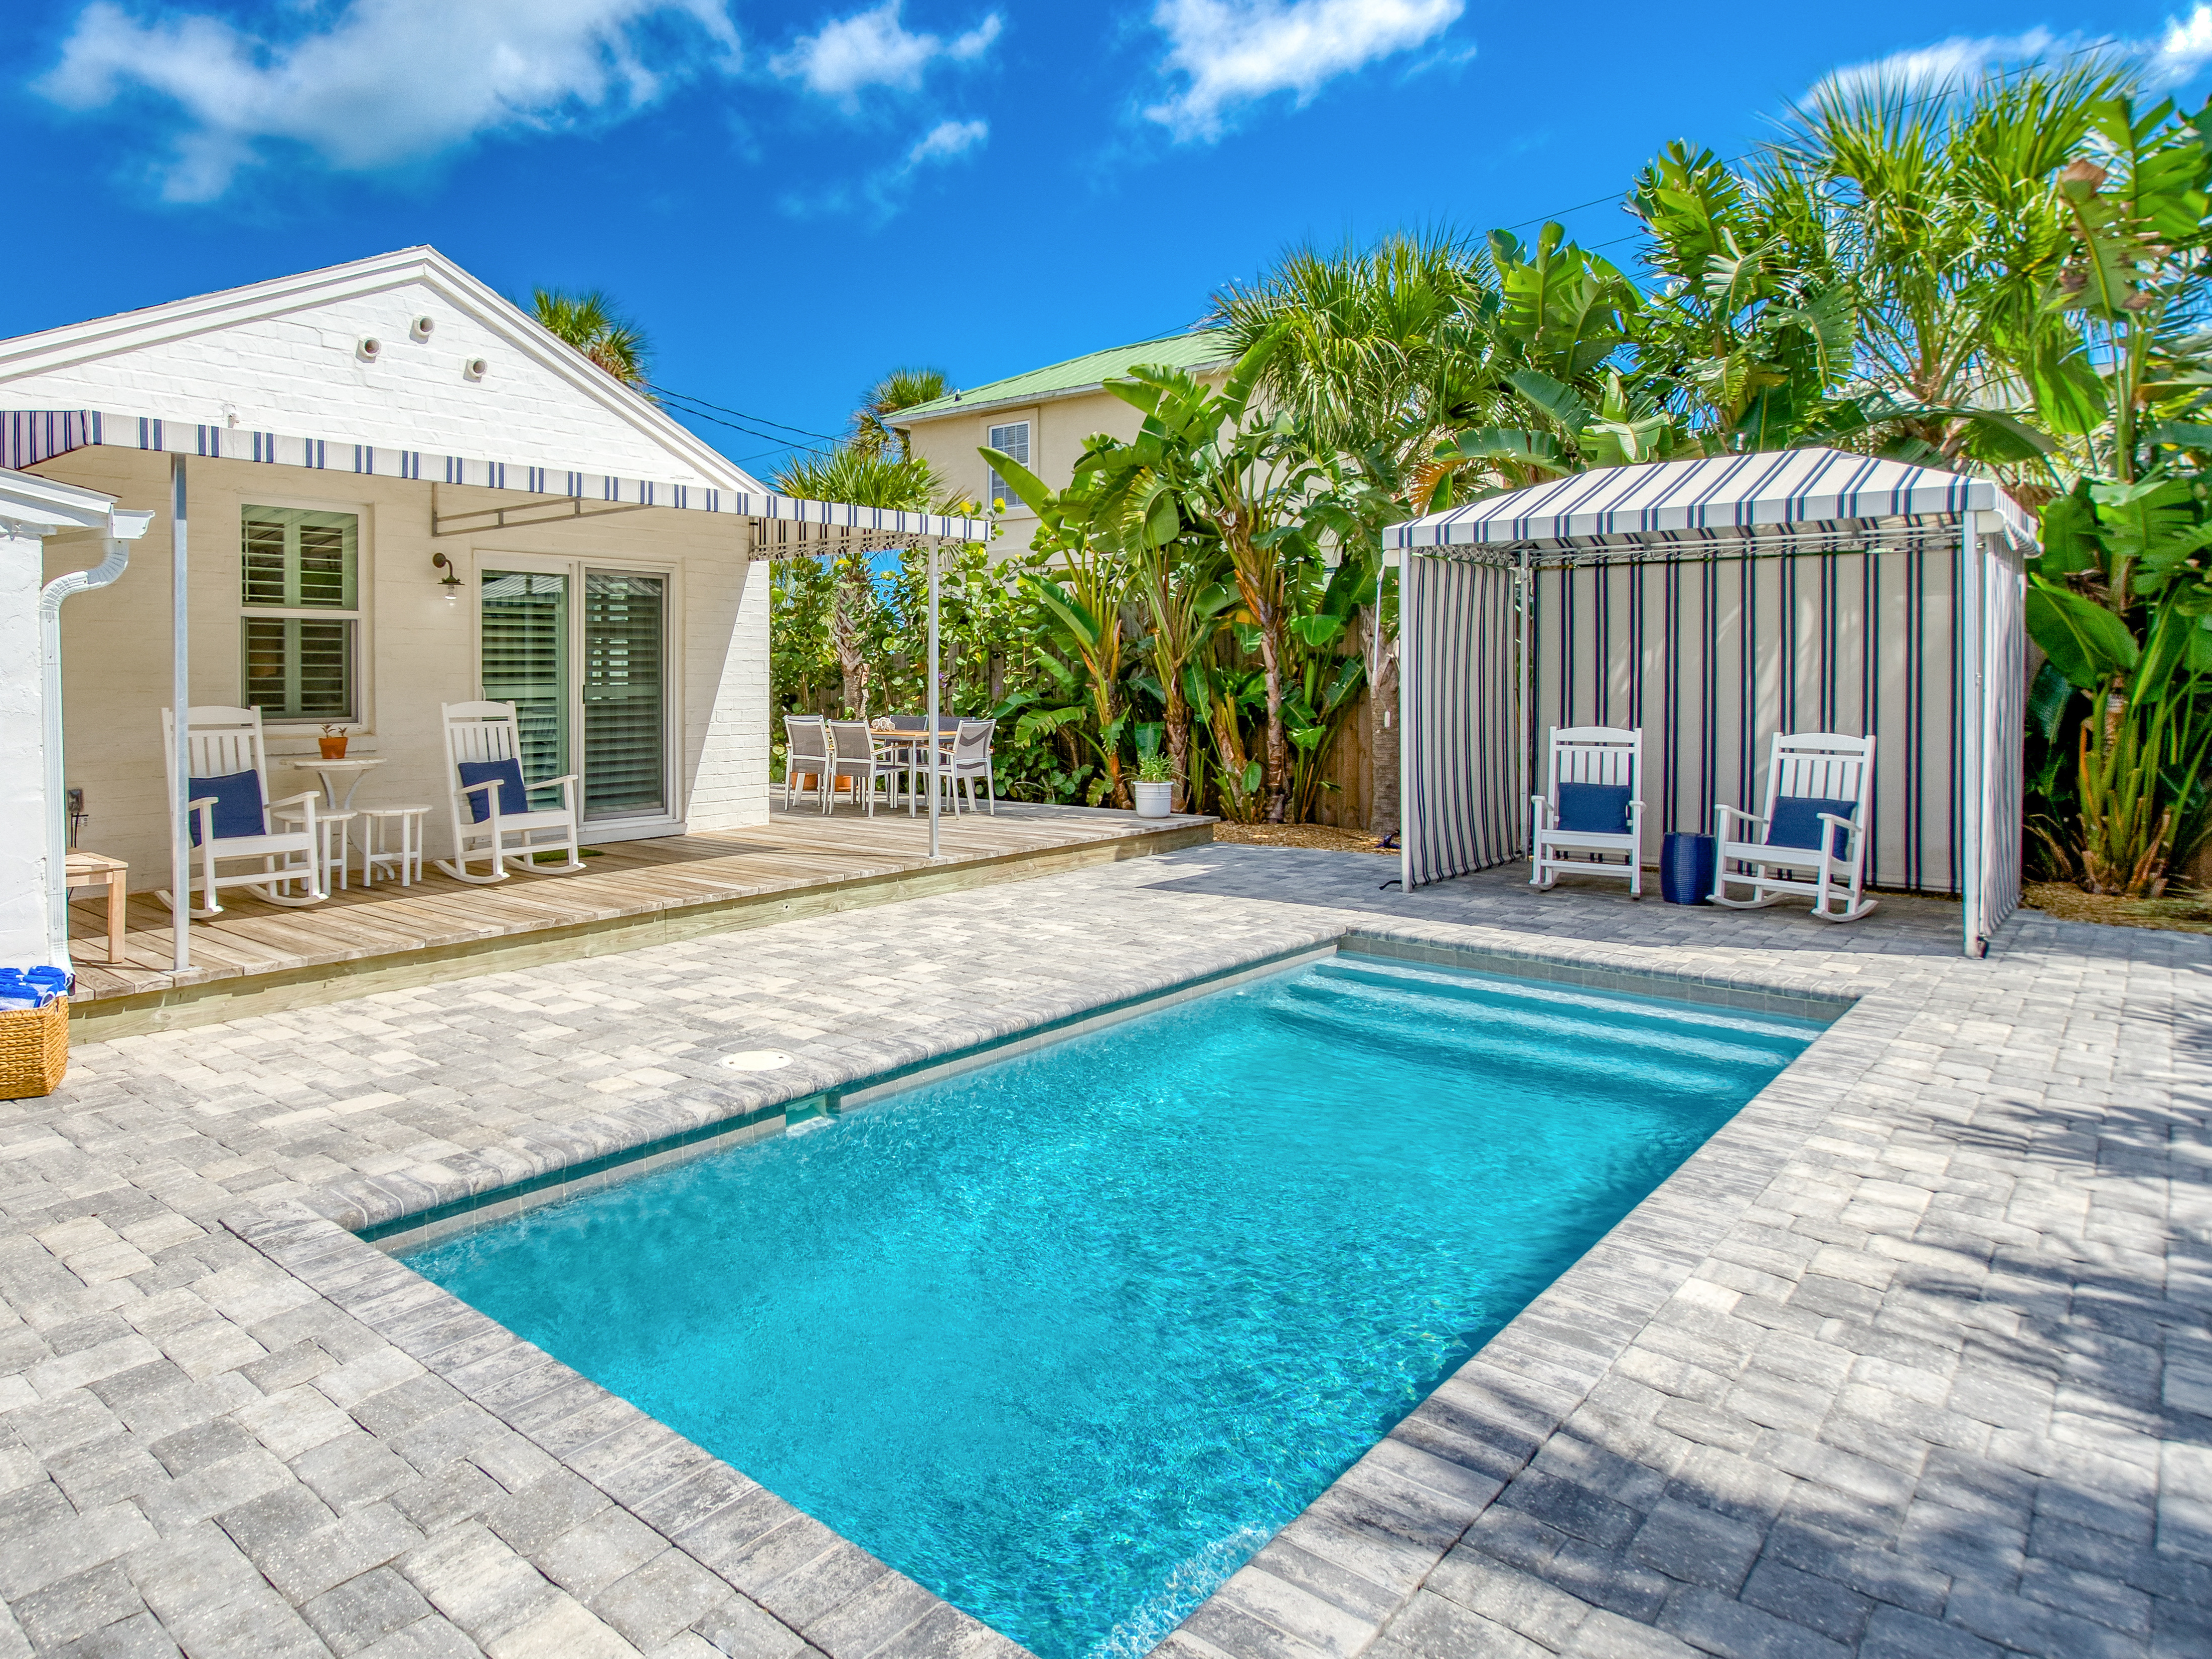 St. Augustine FL Vacation Rental Welcome to Anastasia